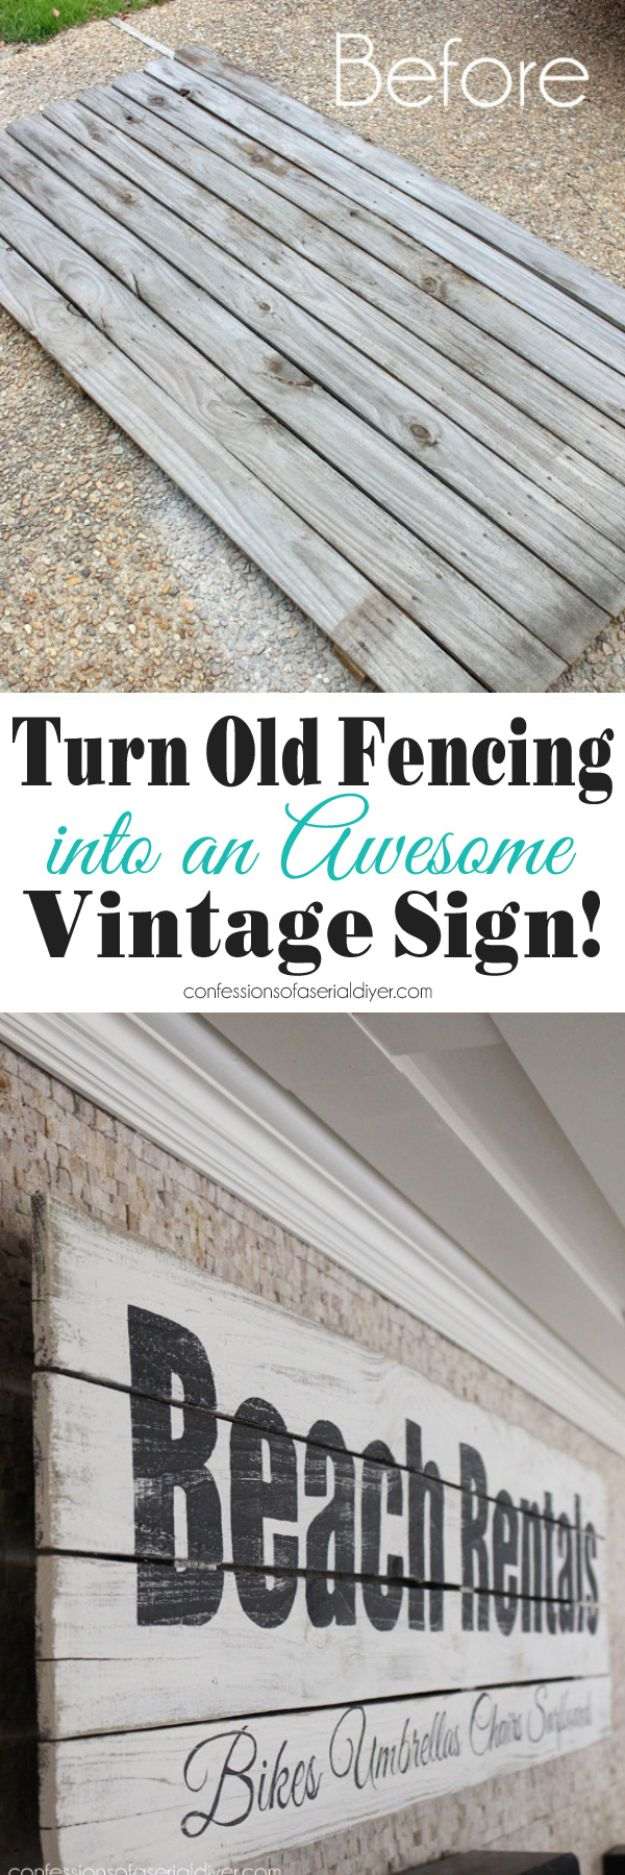 15 Adorable DIY Vintage Sign Ideas You Can Decorate Your Home With